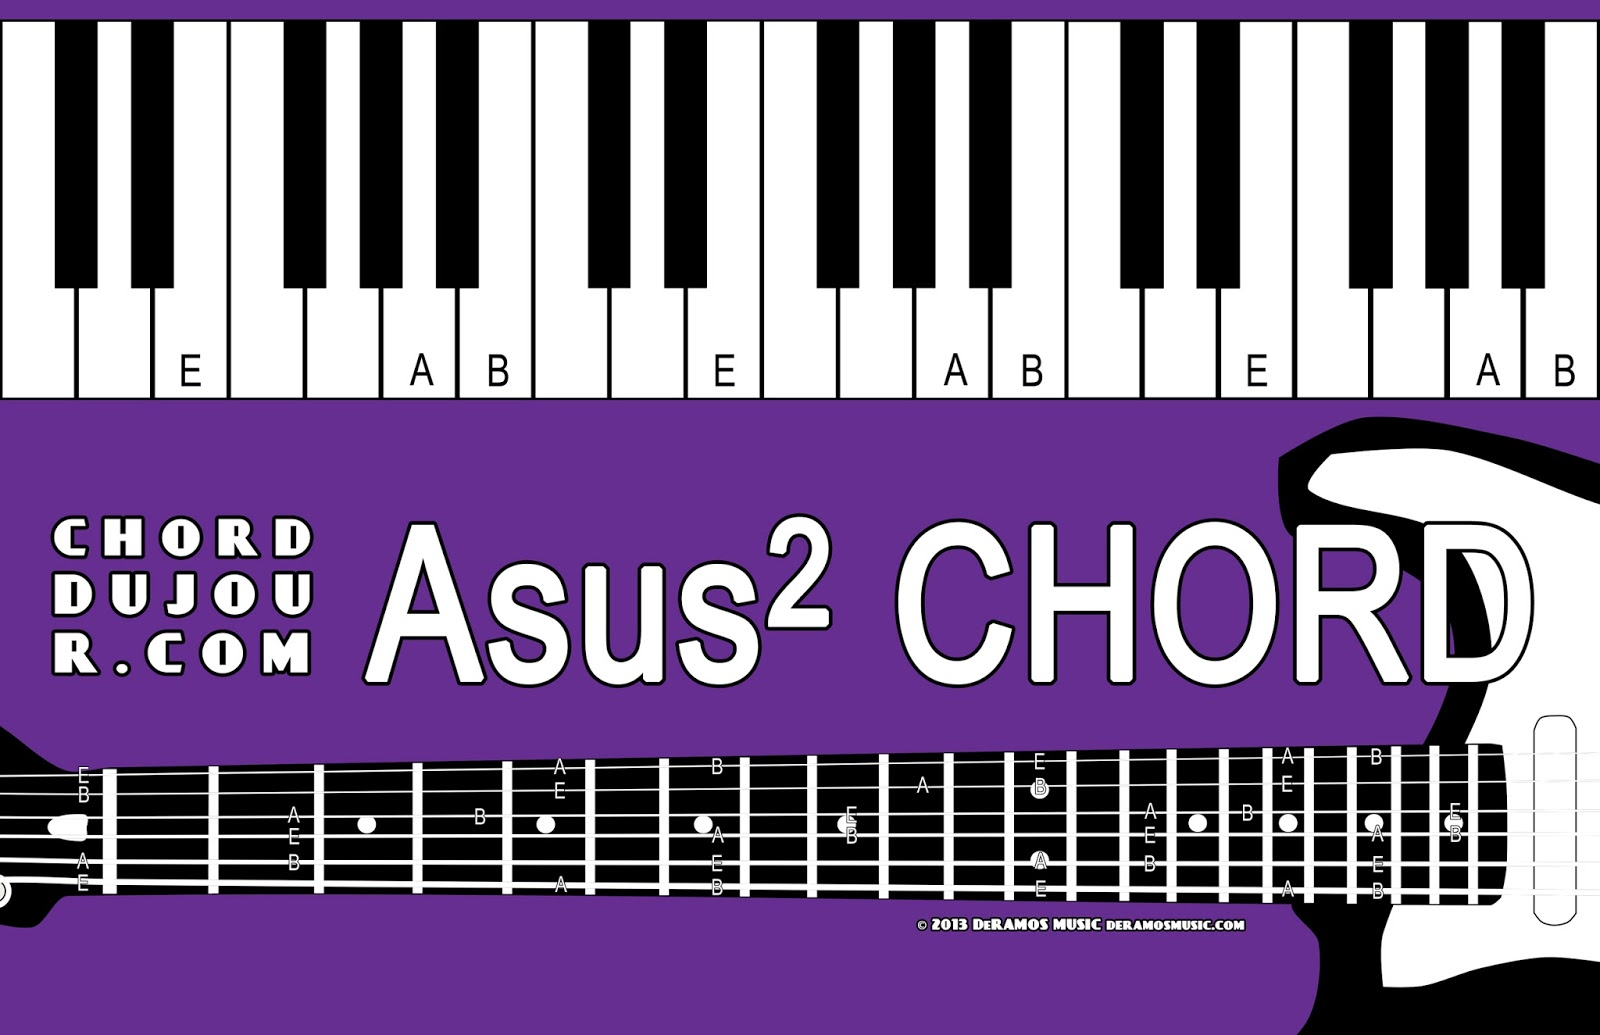 Chord Du Jour Dictionary Asus2 Chord